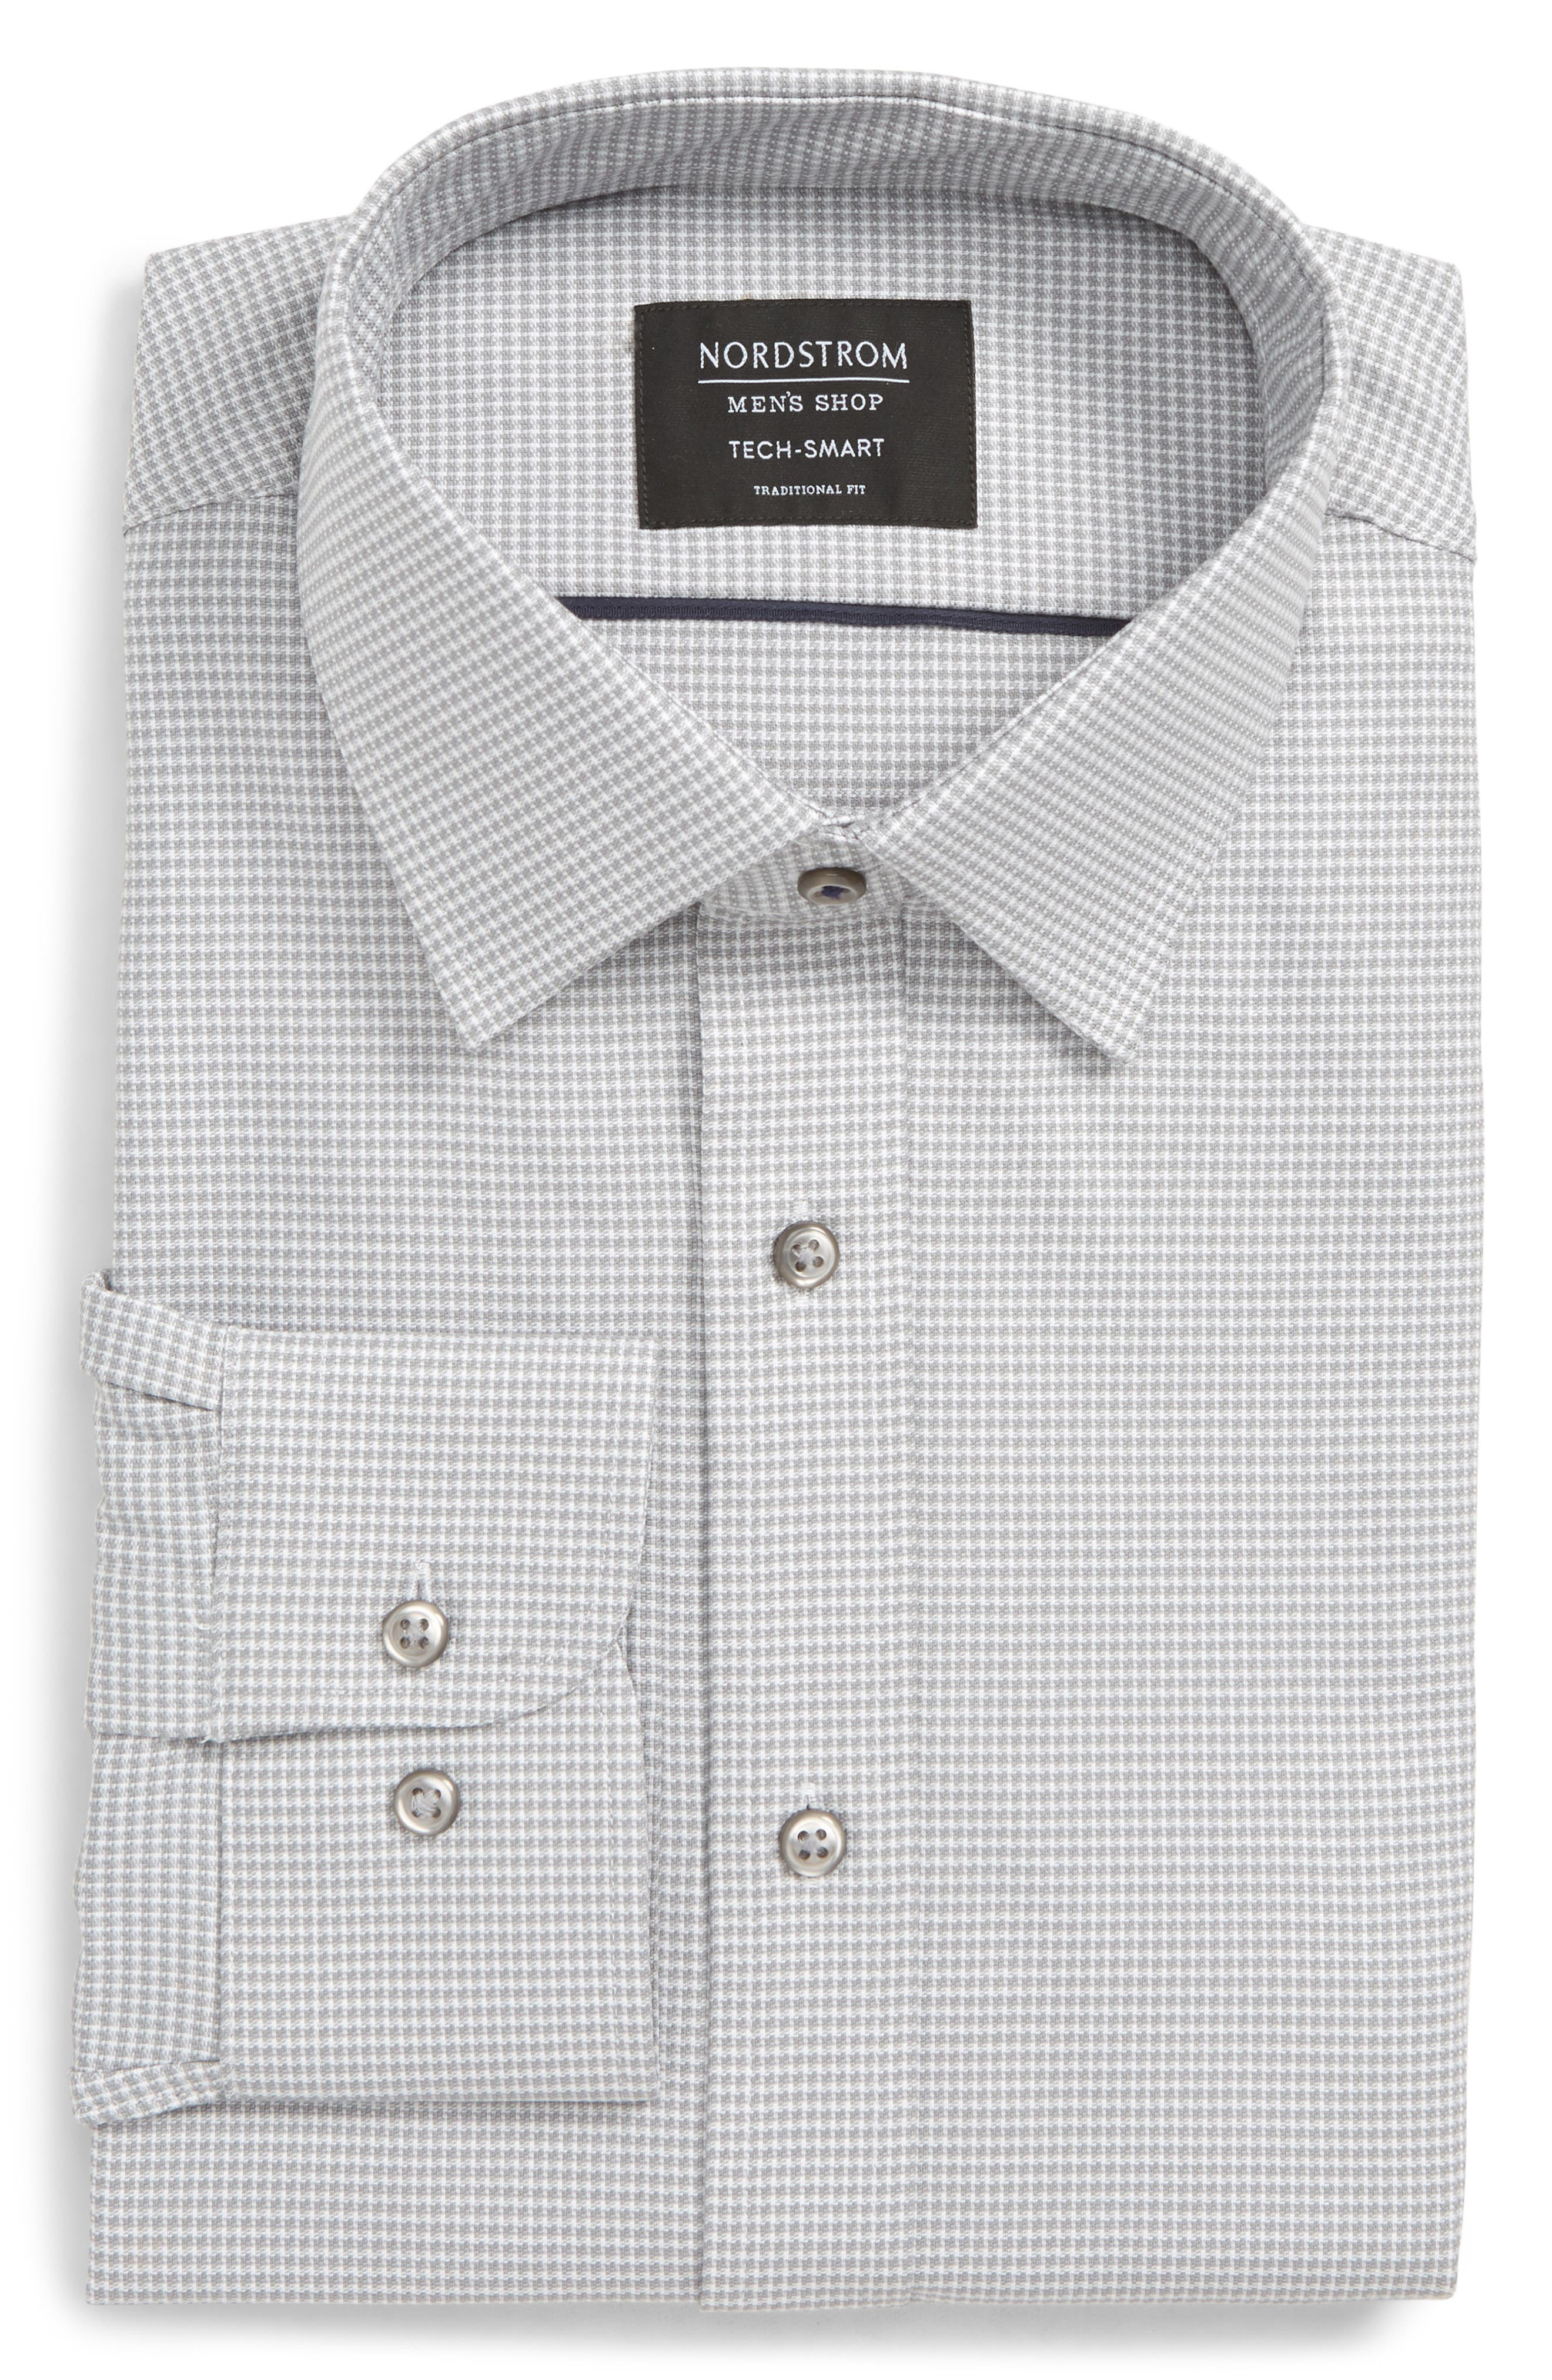 Tech-Smart Traditional Fit Stretch Solid Dress Shirt,                             Main thumbnail 1, color,                             GREY SLEET